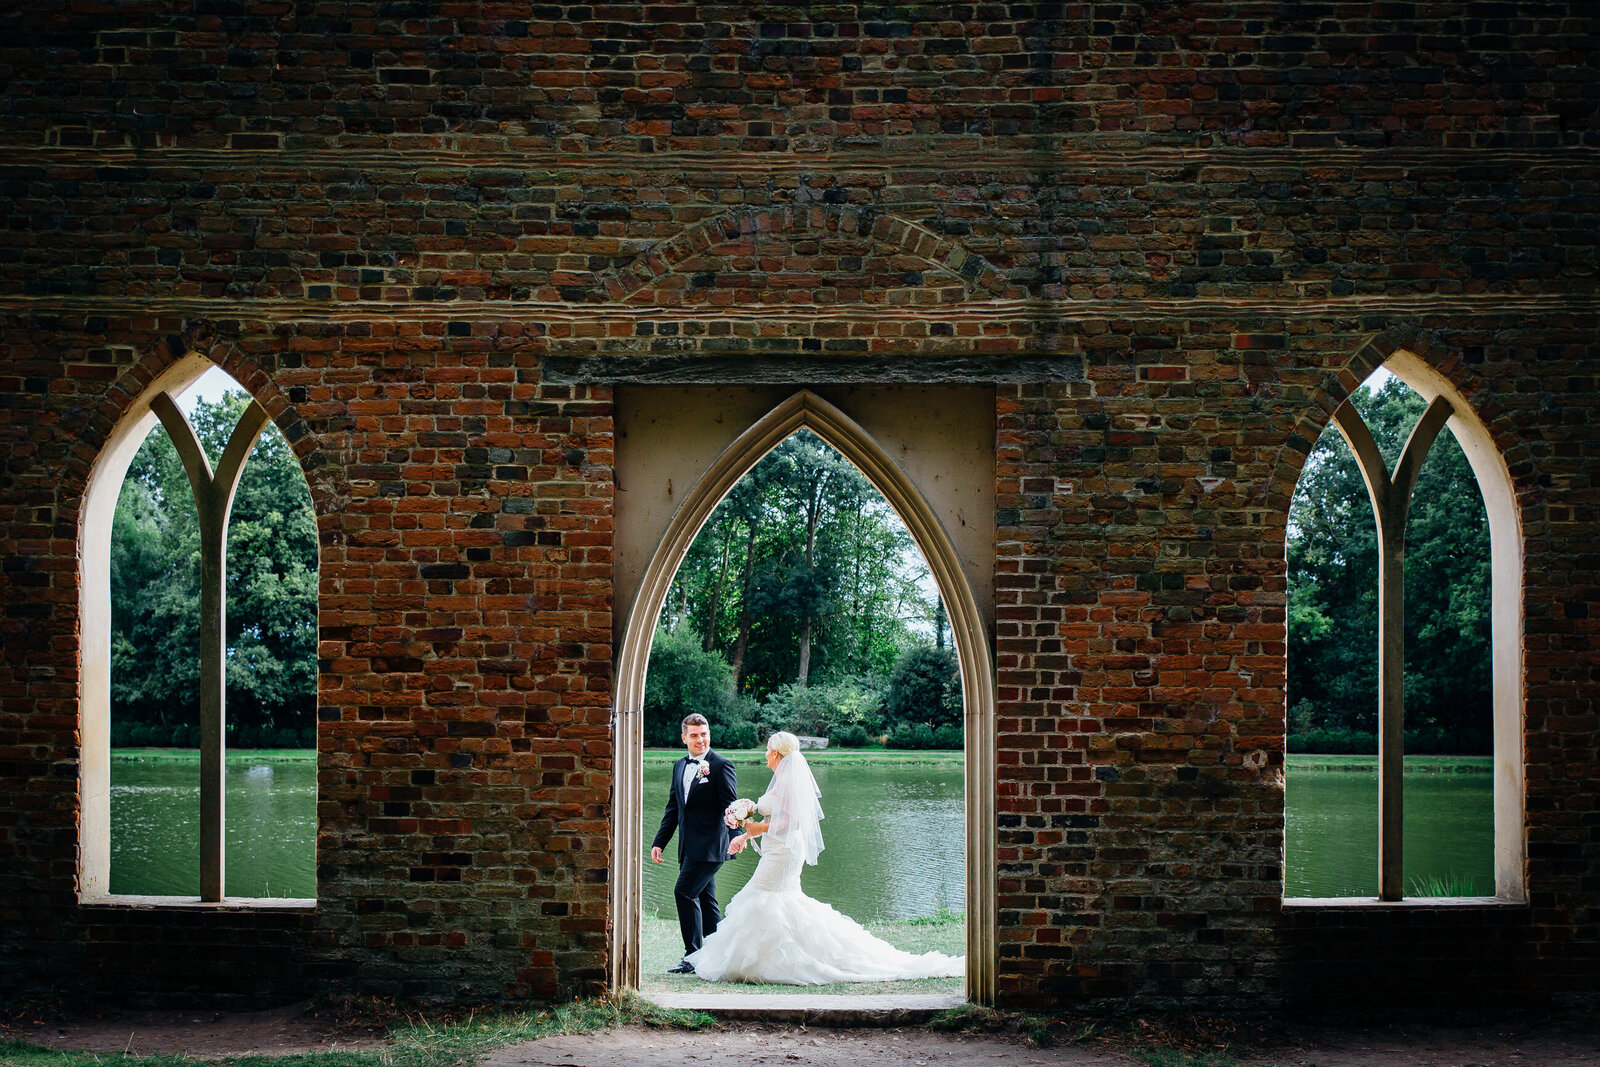 Wedding photography at Painshill Park Surrey. Bride and groom walking in grounds. Photography by Lynsey Grace Photography